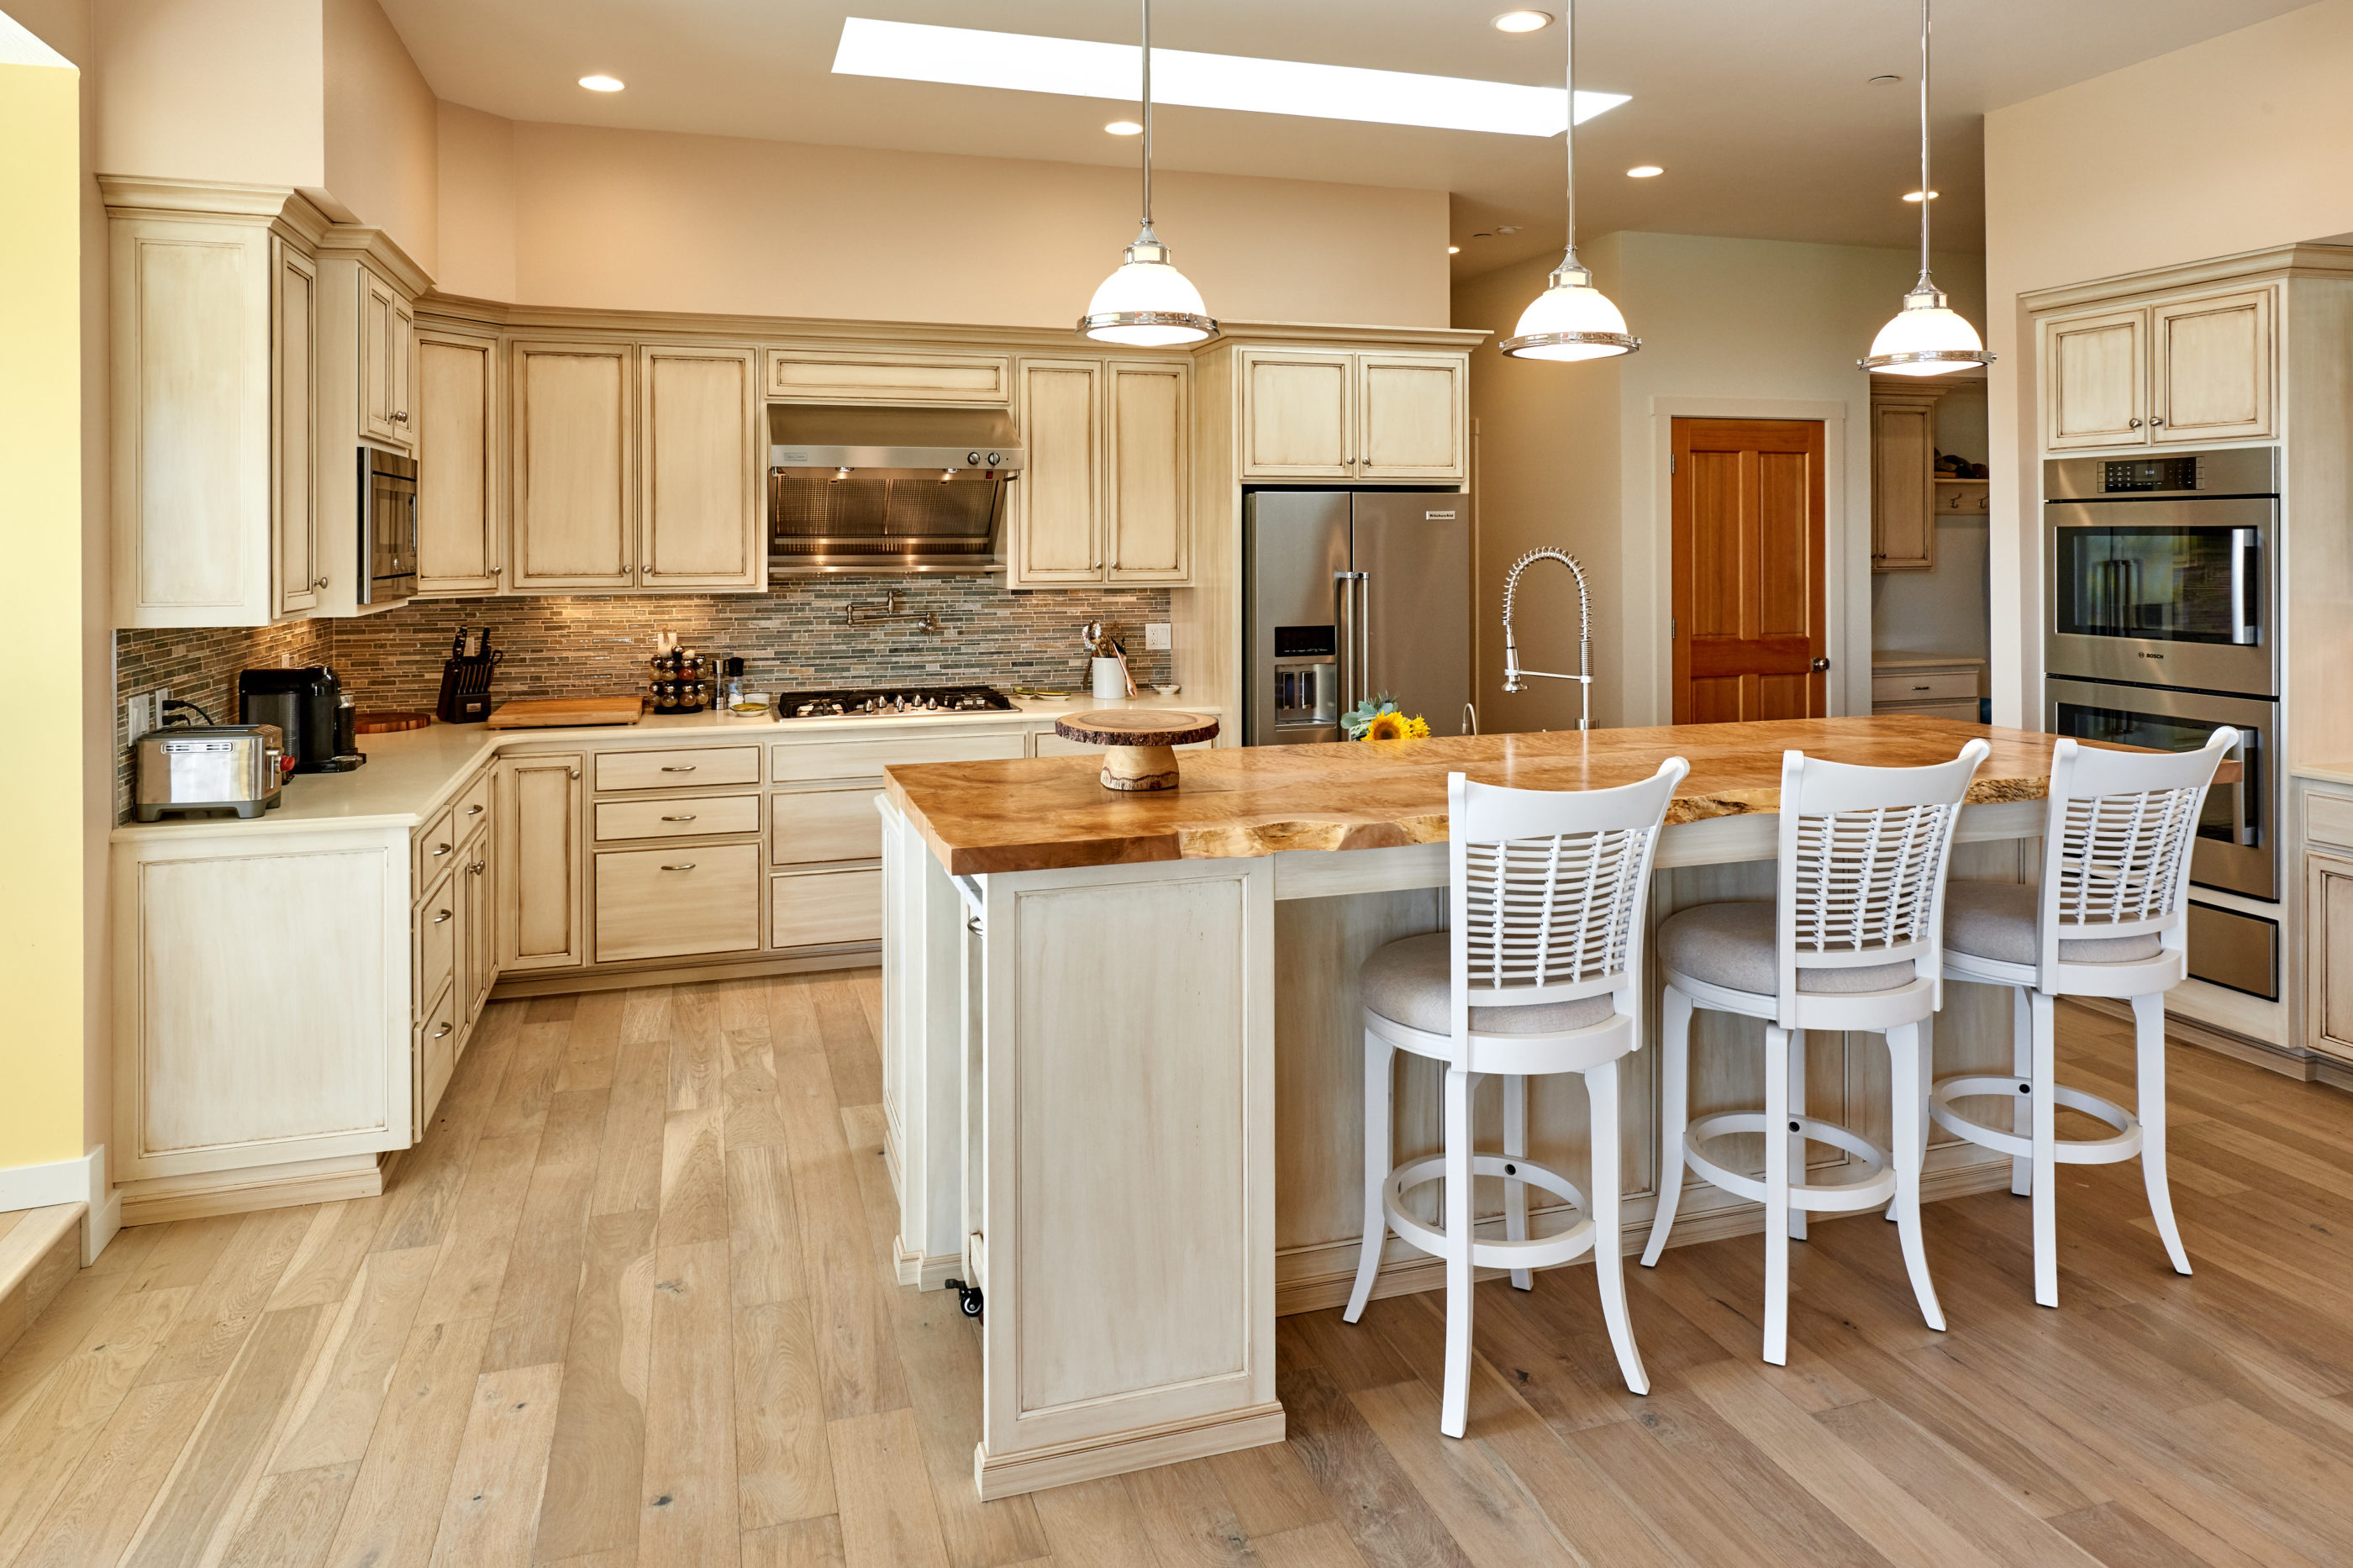 Pendant lights above kitchen island with a perimeter of white glazed cabinets